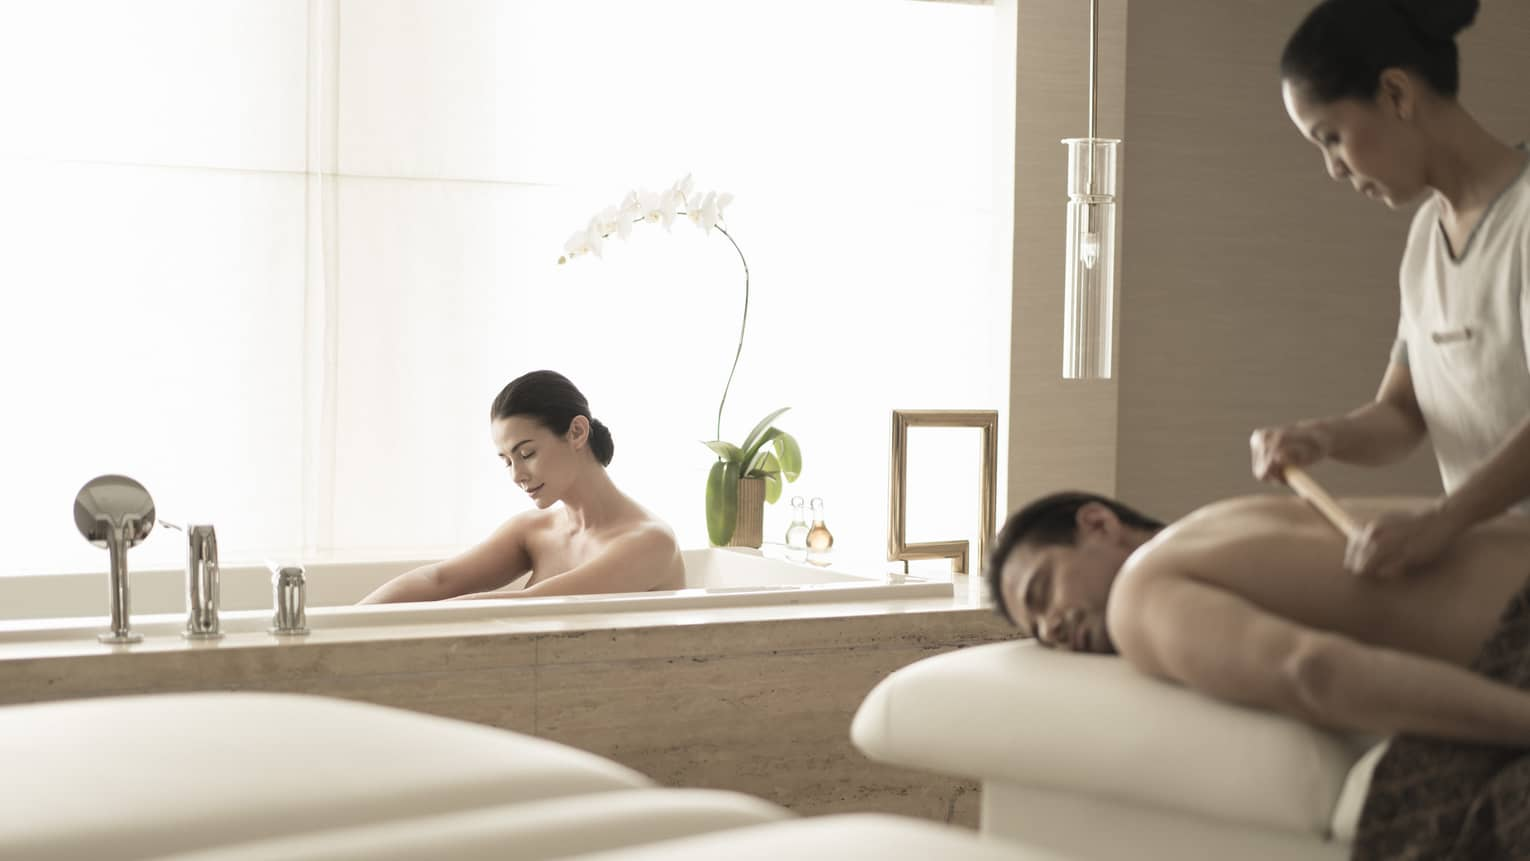 Woman soaks in spa tub near man getting massage